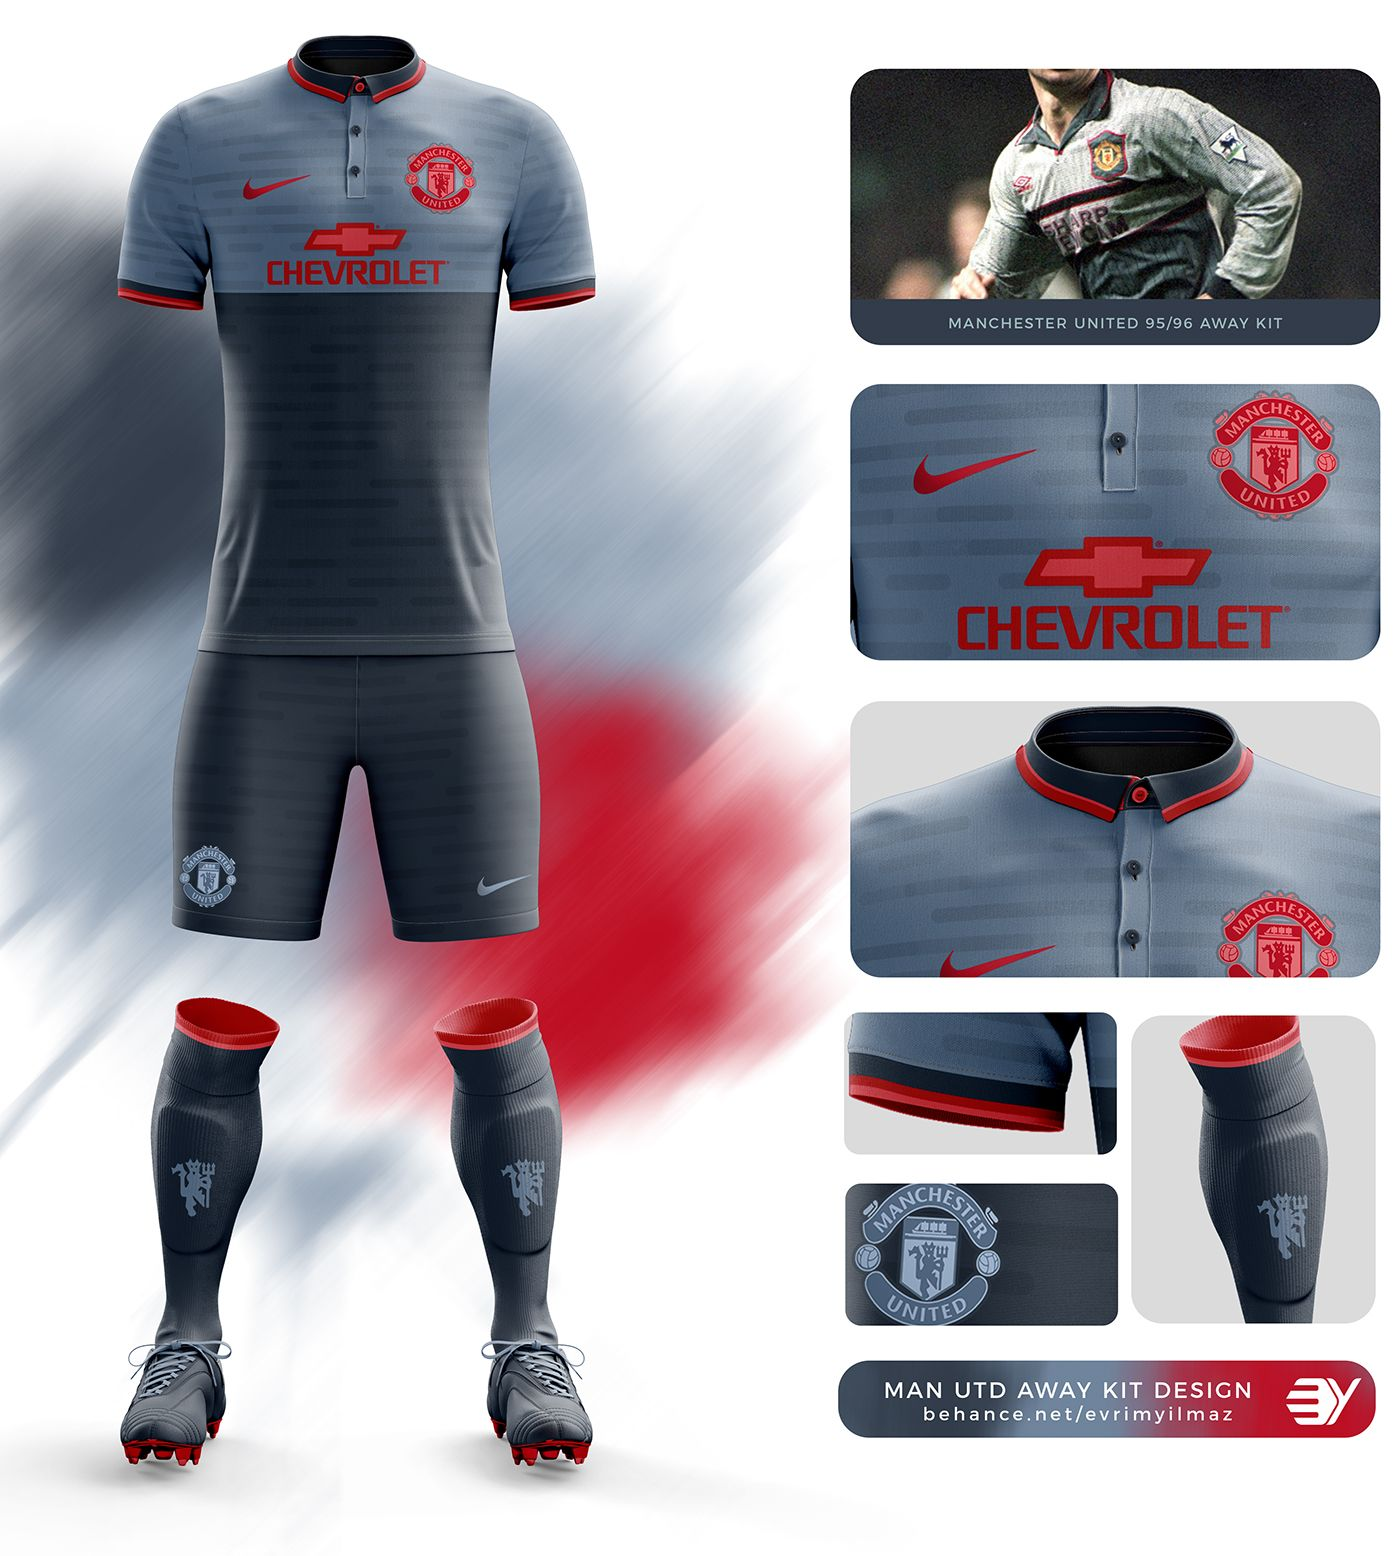 Manchester United Away Kit Design On Behance Manchester United Away Kit Manchester United Logo Sport Shirt Design